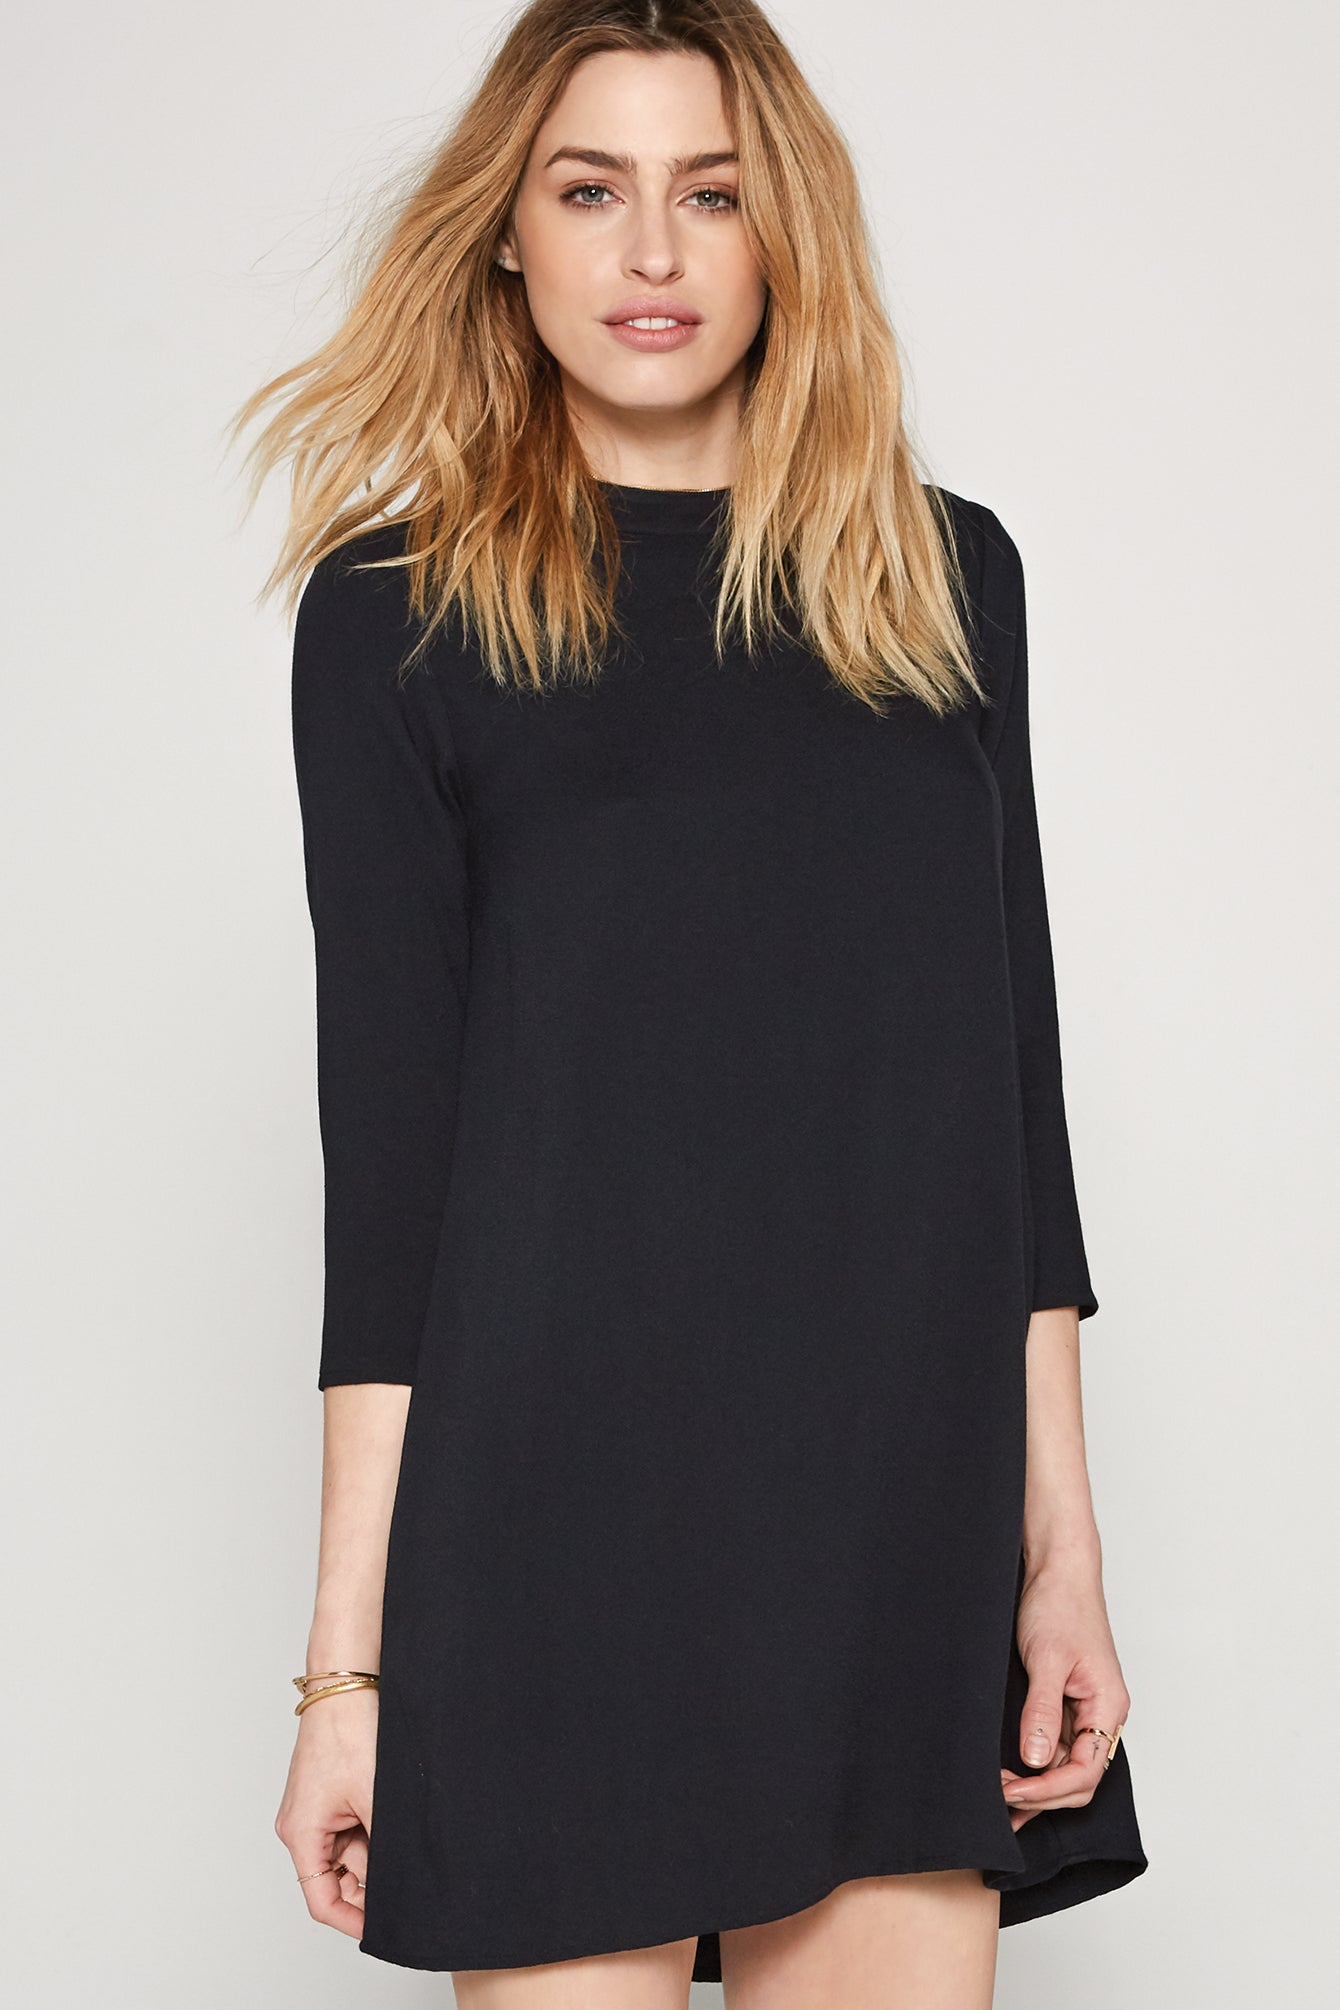 Bitsey dress